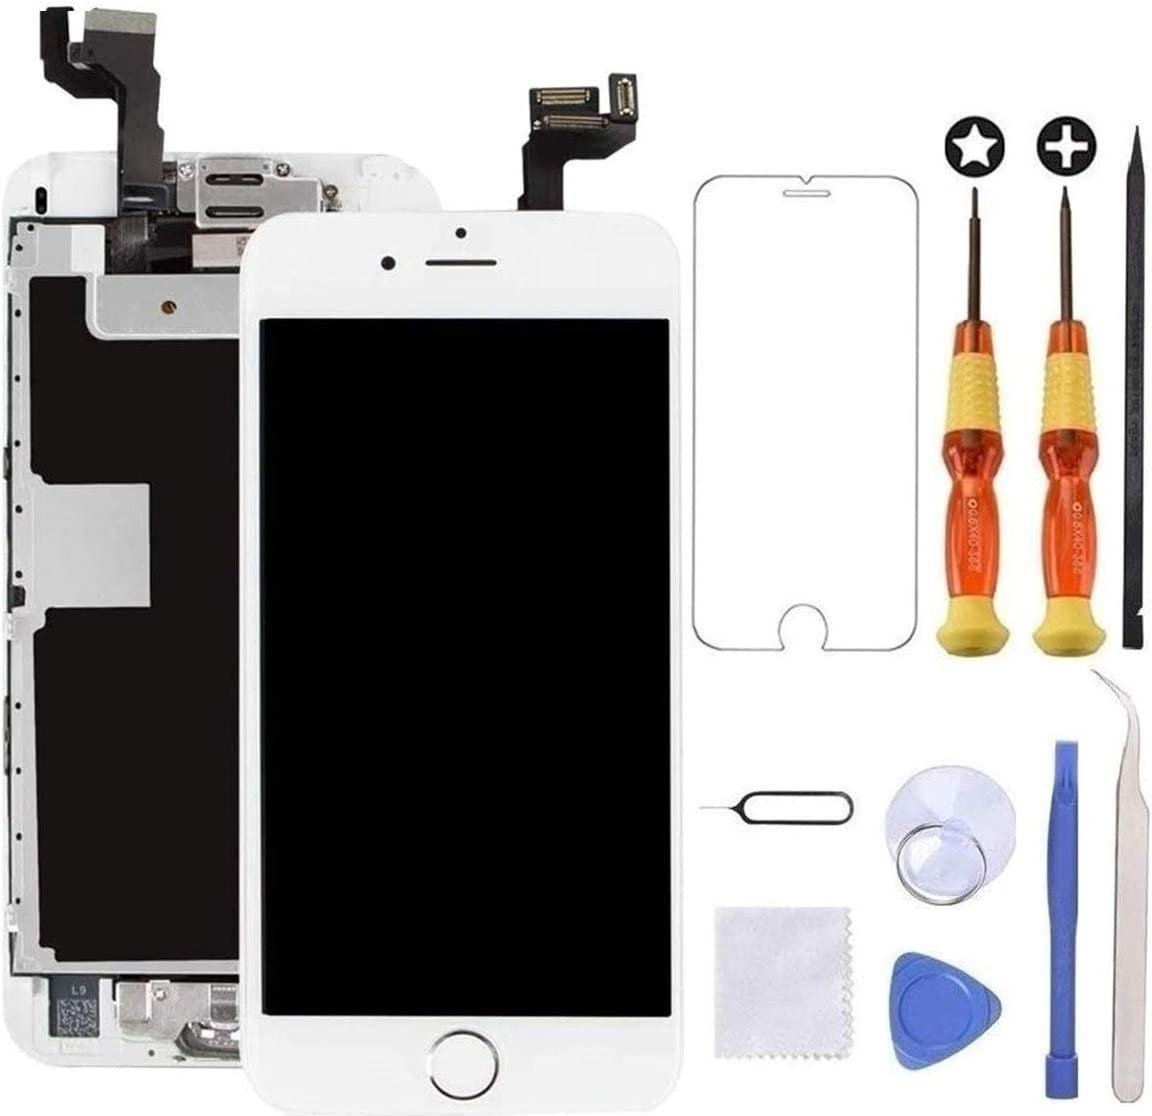 Brinonac for iPhone 6s Screen Replacement White Touch Display LCD Digitizer Full Assembly with Front Camera,Proximity Sensor,Ear Speaker and Home Button Including Repair Tool and Screen Protector